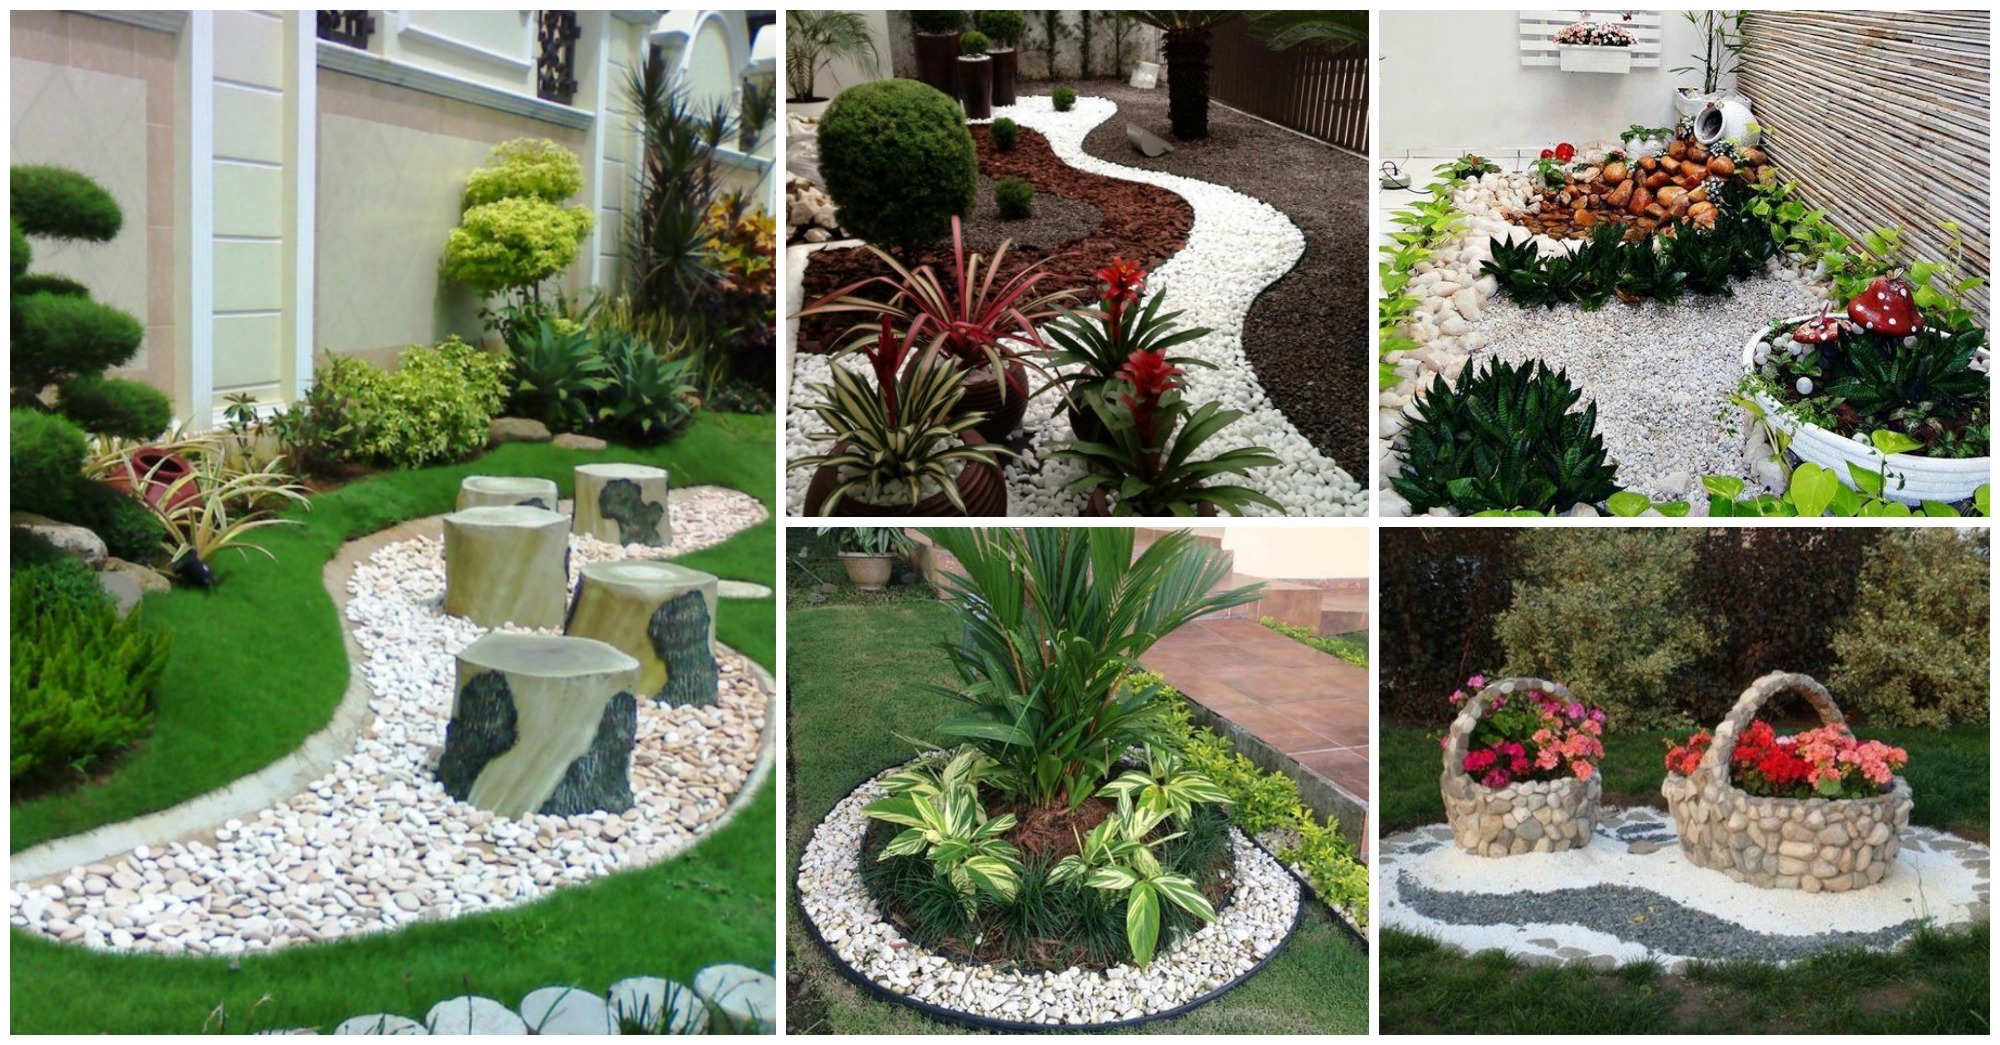 12 fant sticas ideas para dise ar un jard n con piedras for Ideas para decorar patios y jardines